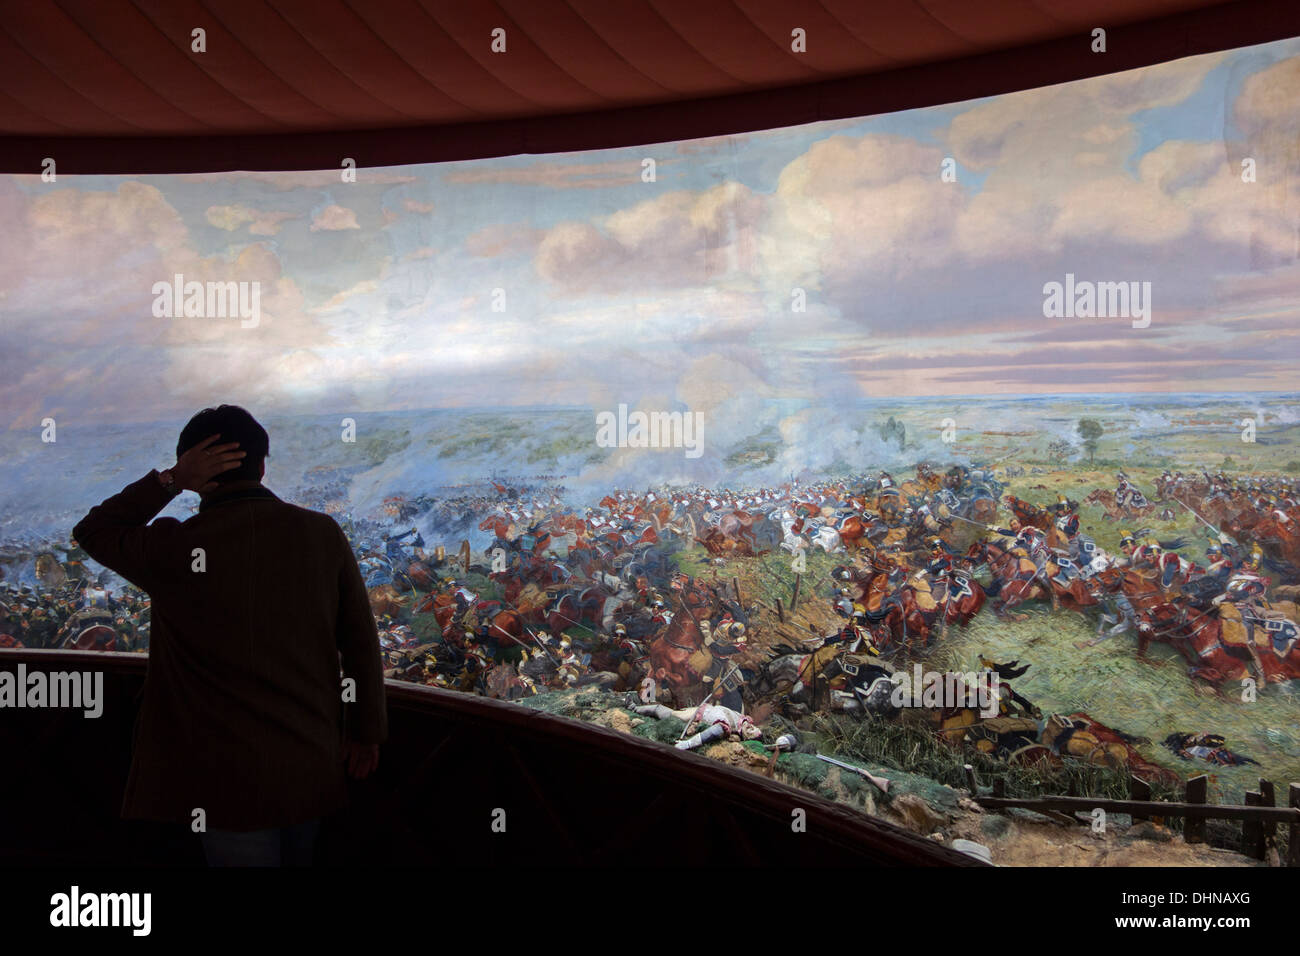 Tourist watching battlefield scenes at Panorama, museum showing a 360° fresco of Battle of Waterloo at Braine-l'Alleud, Belgium - Stock Image